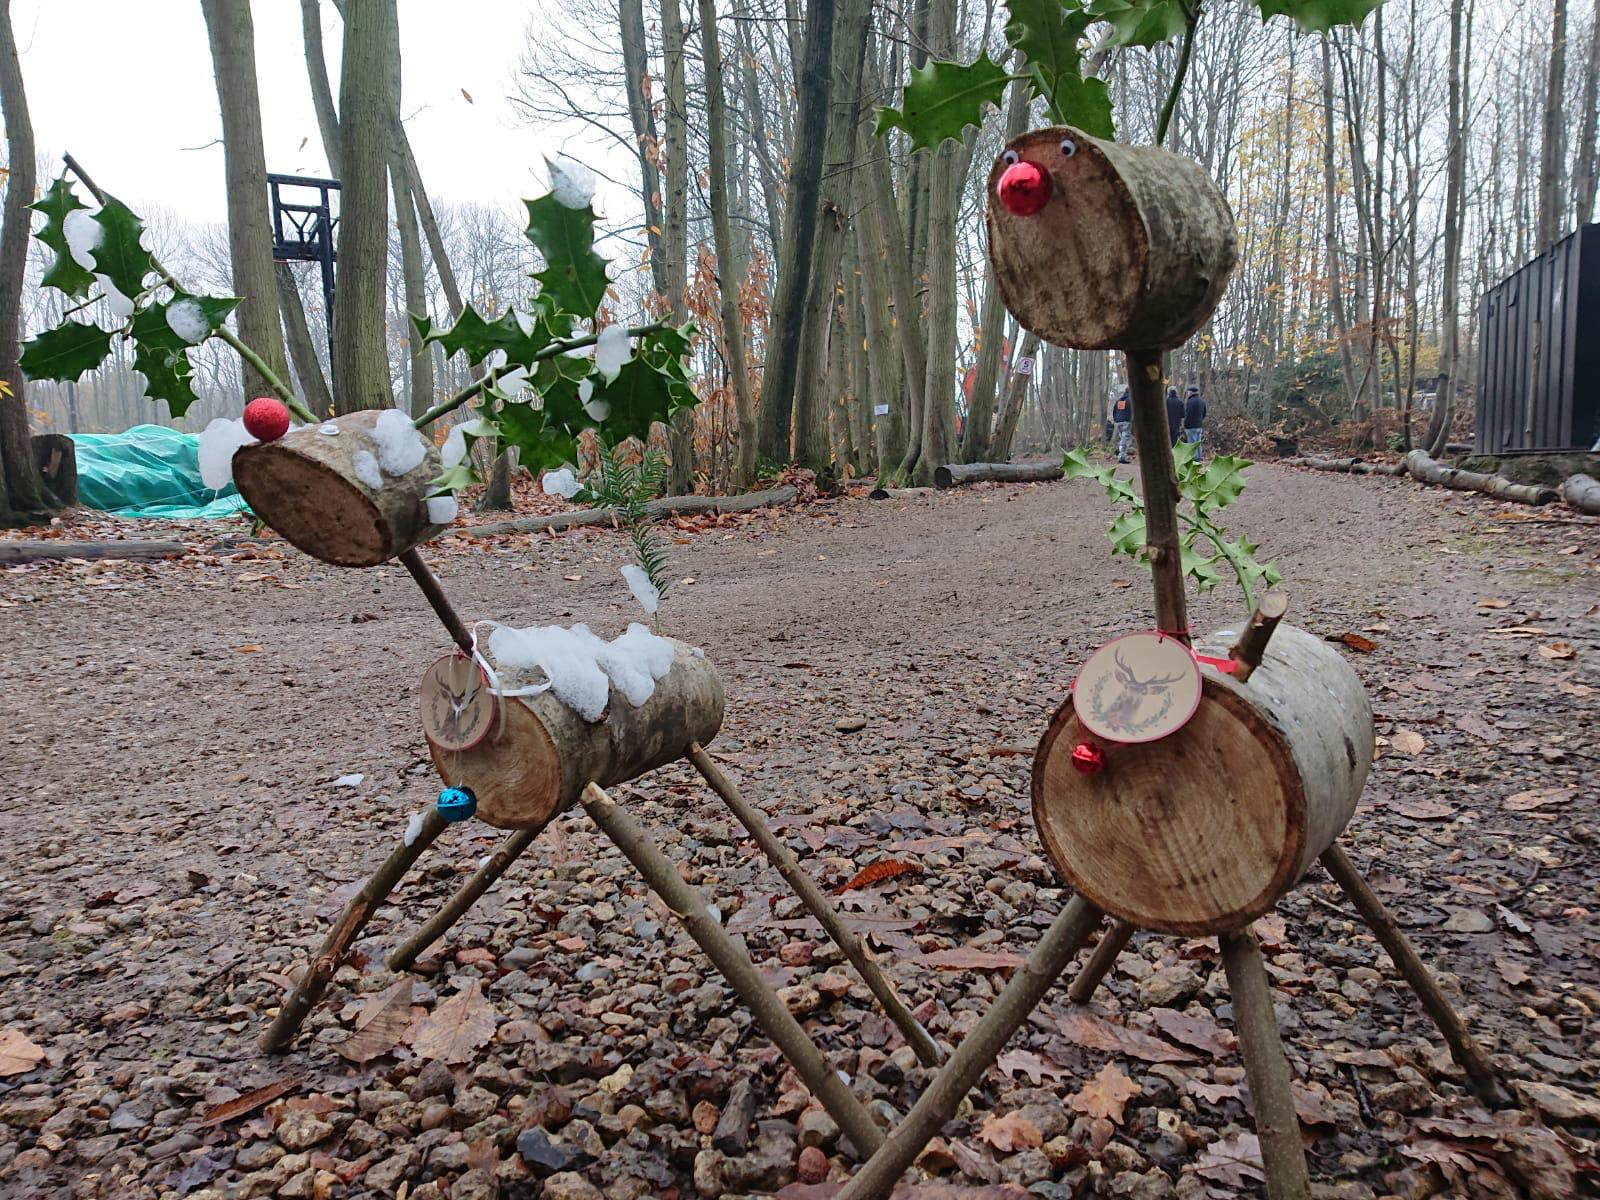 Take home Reindeer kits available for sale